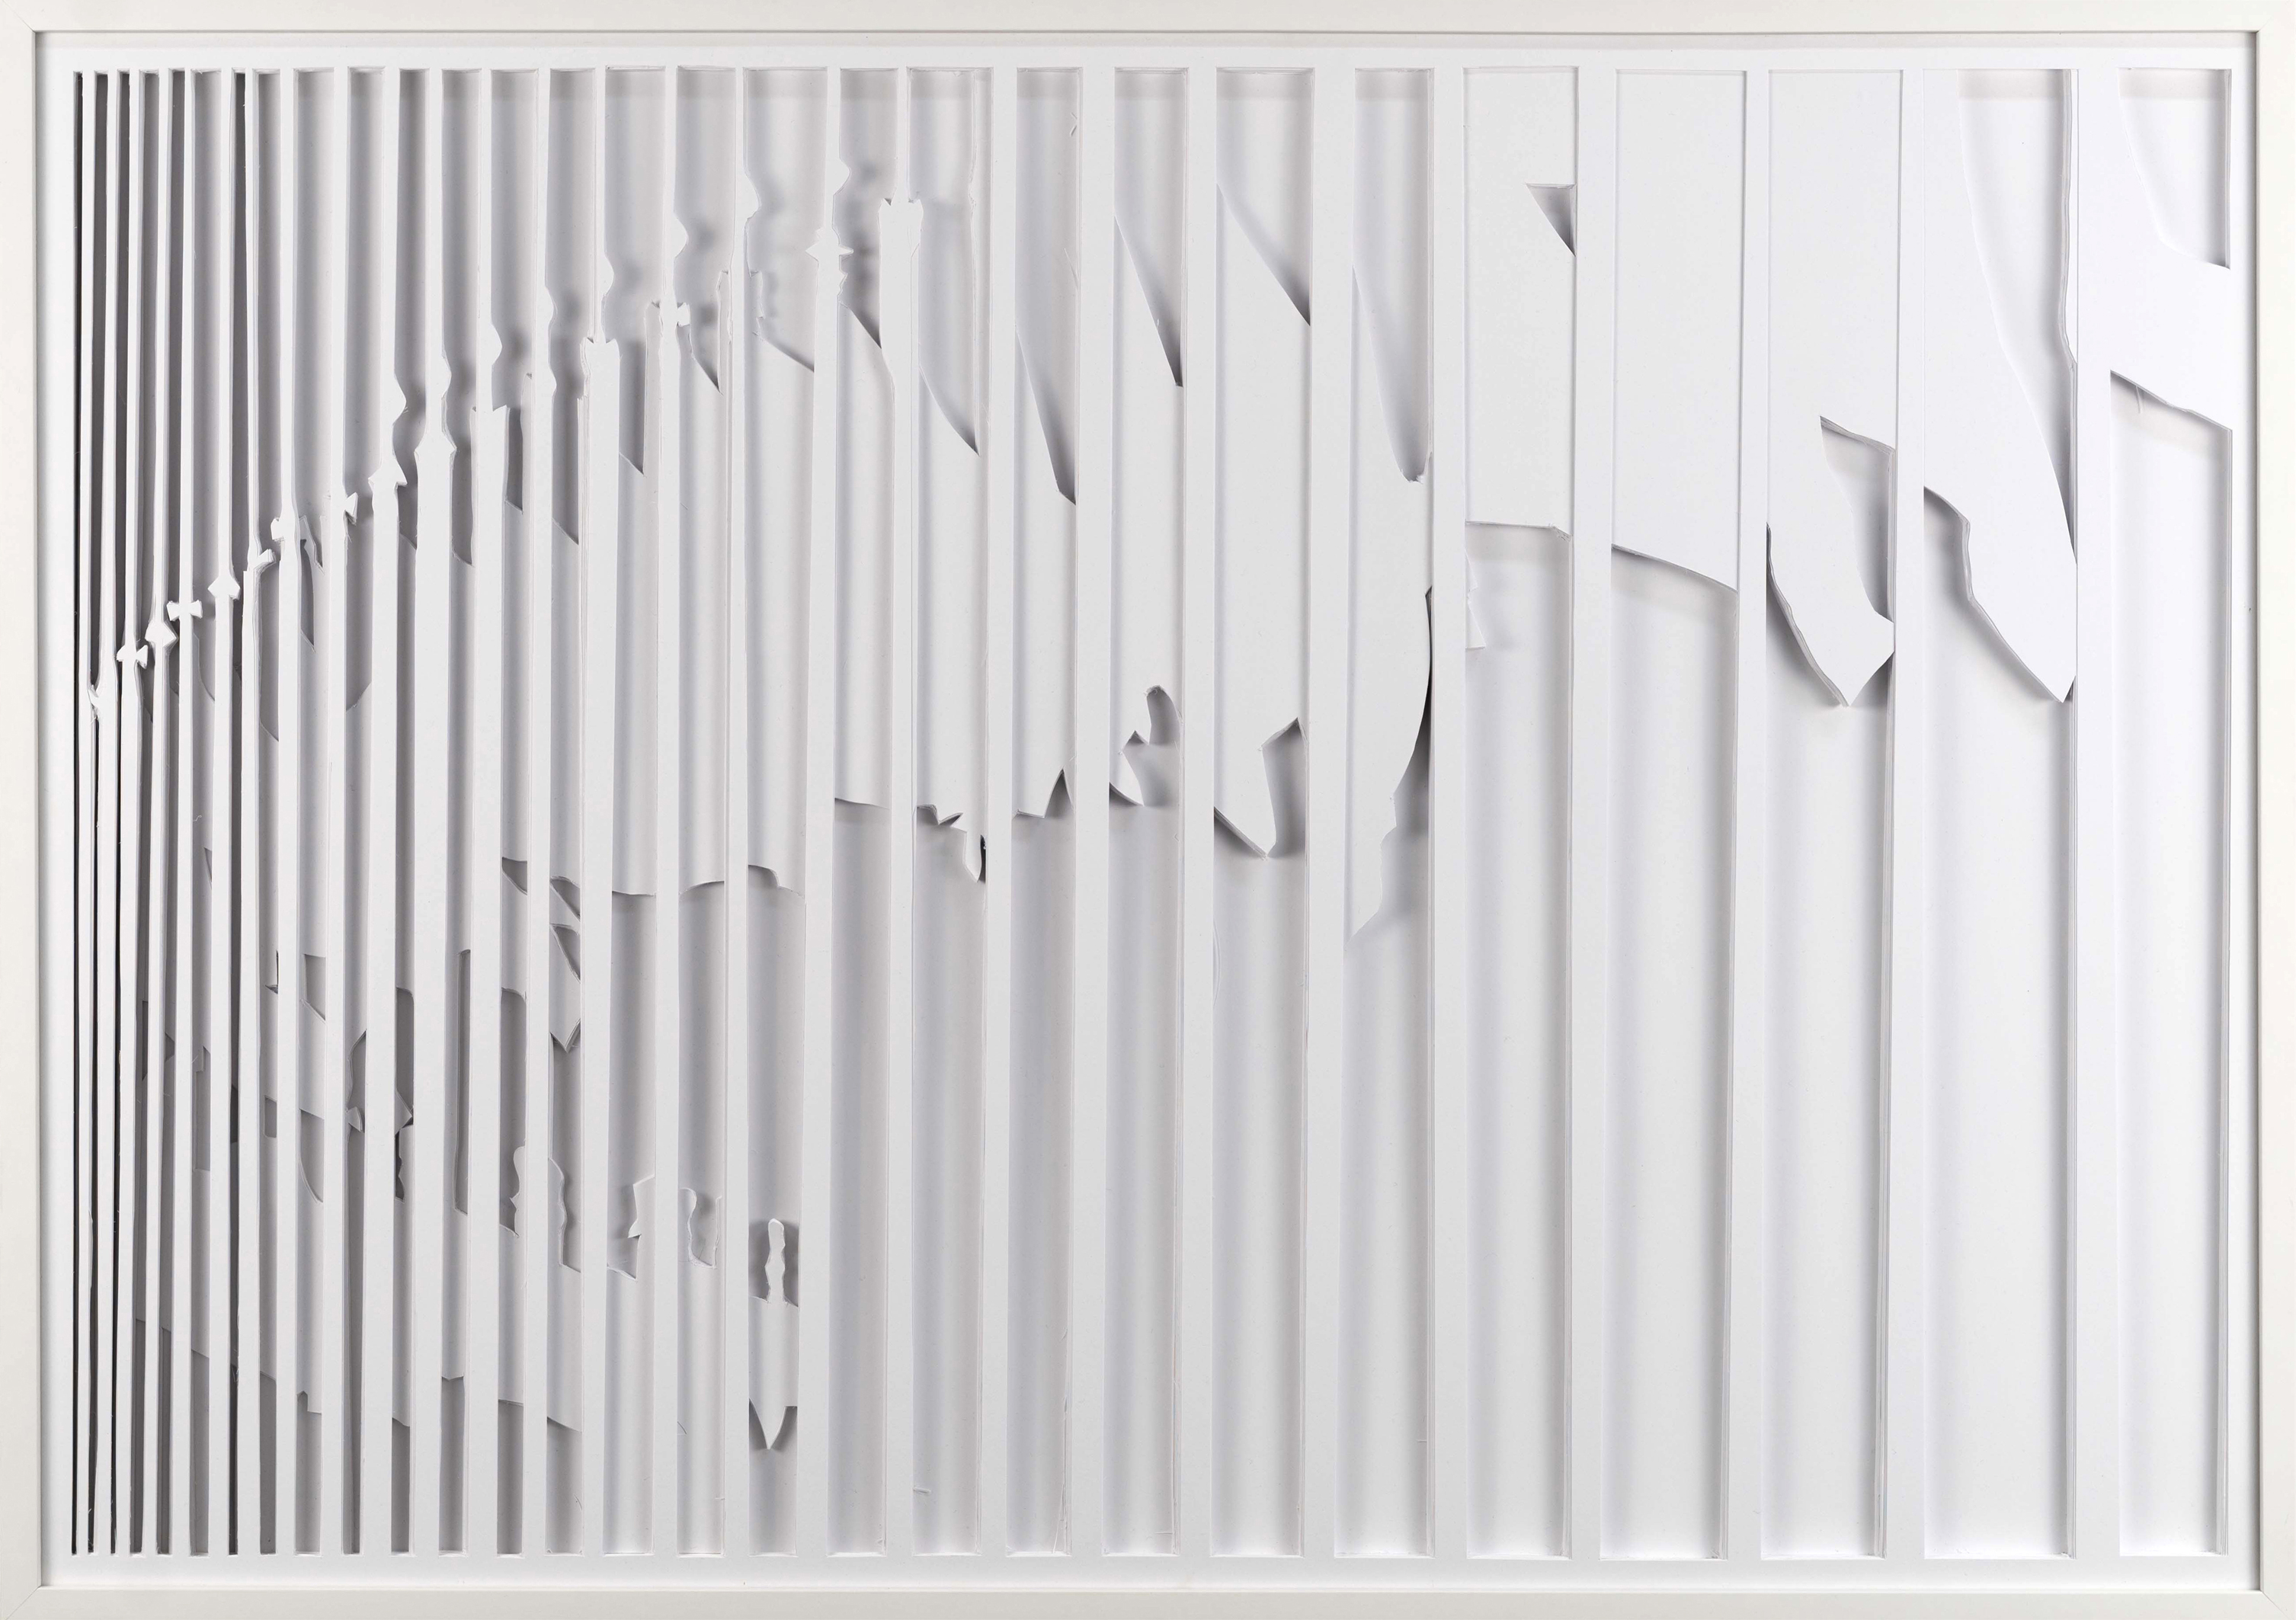 Patricia Westerholz Serie failed filter / flags #04 2018 cut out 70 x 100 x 1,5 cm Foto: Andreas Kempe